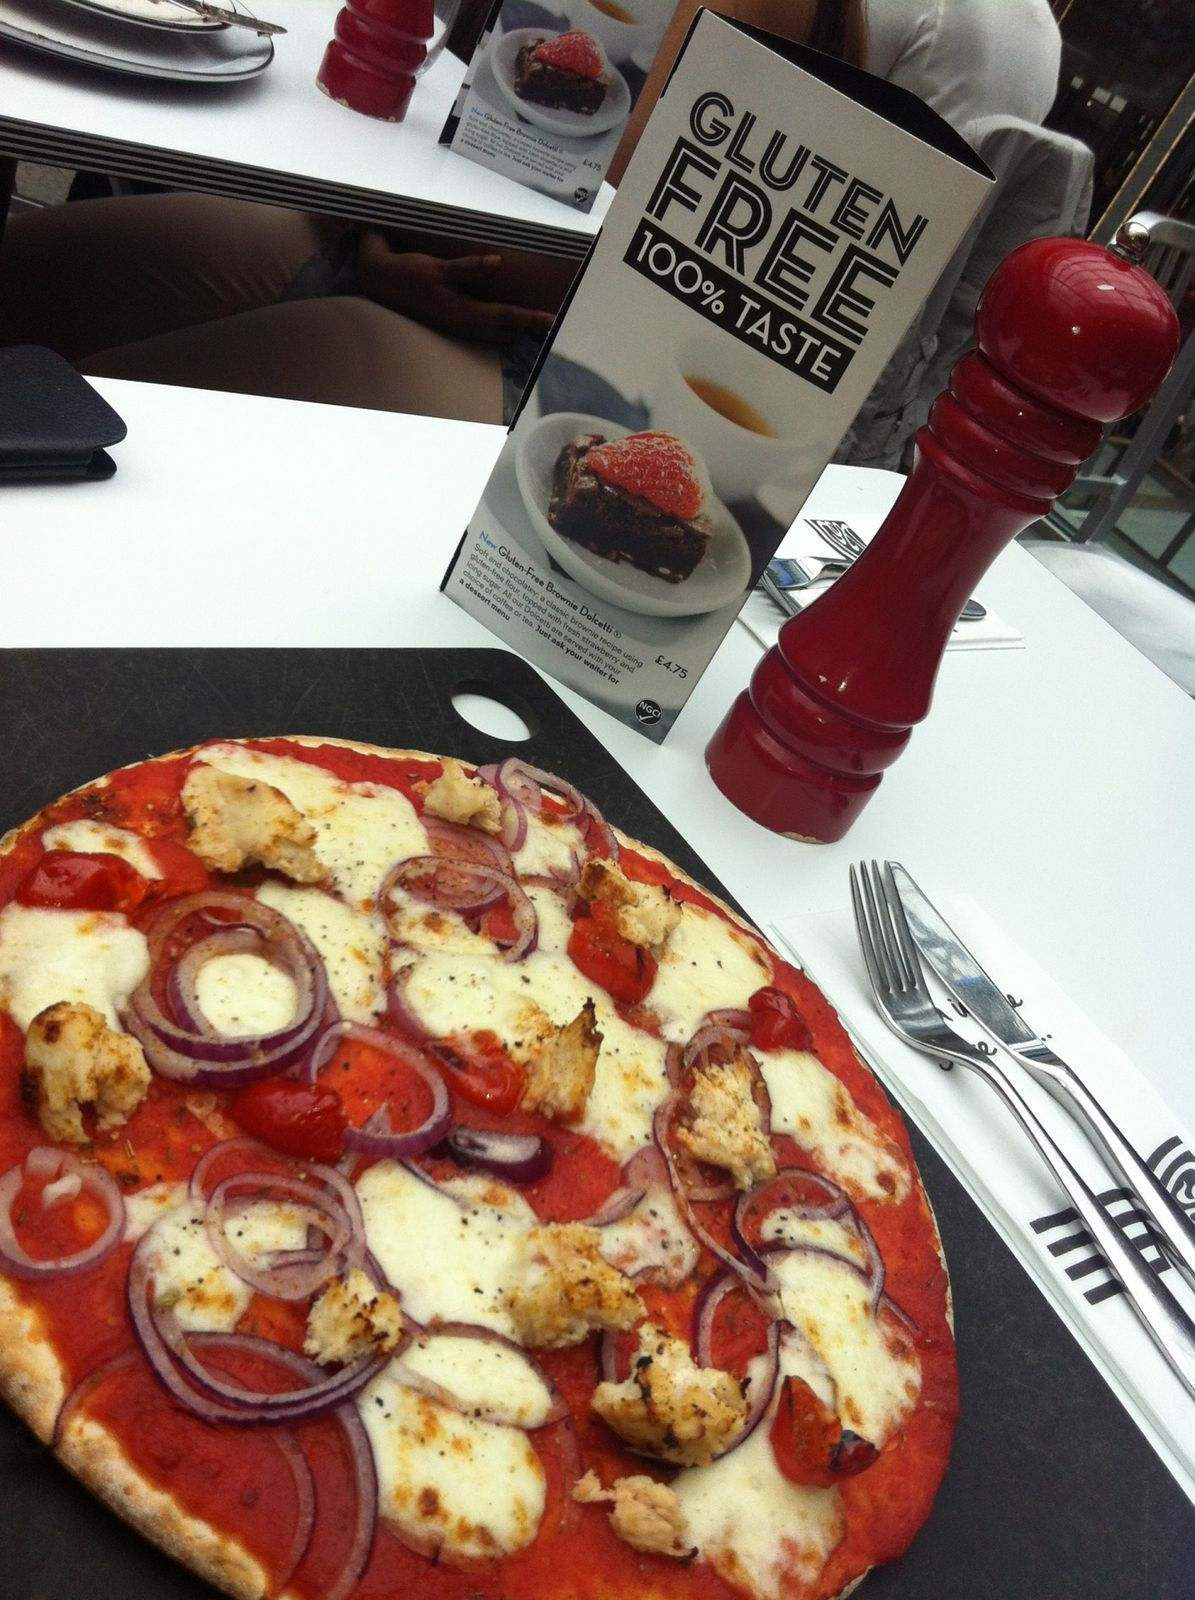 Pizza Express GF! This is the first time I'd tried the Pizza Express GF pizza and it was very good, this was at Stratford City Westfield.